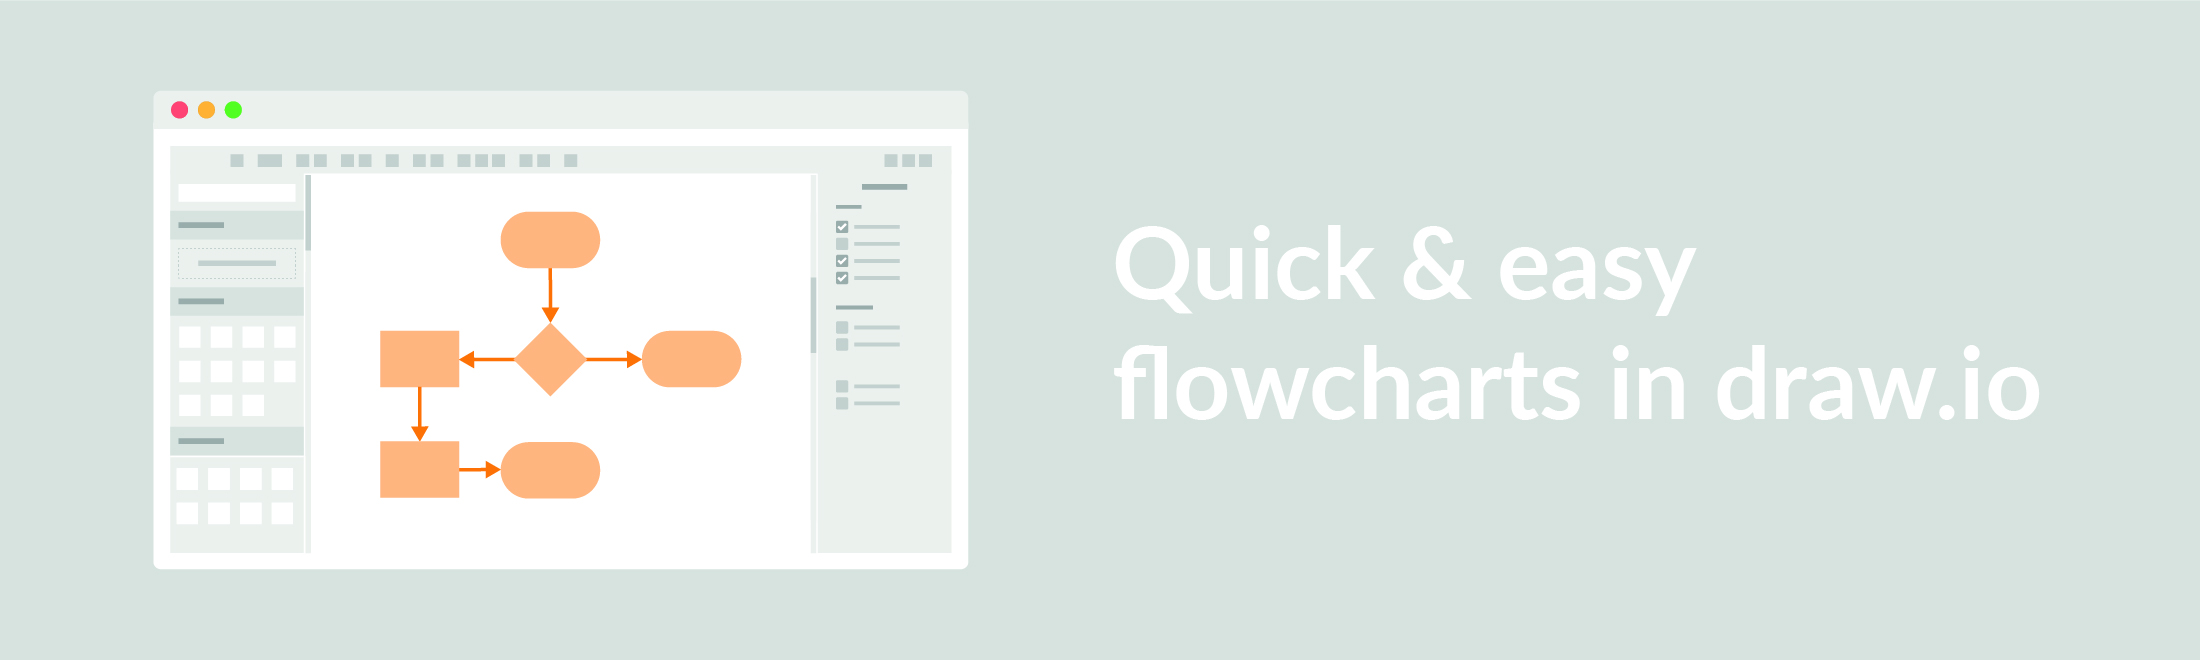 flowcharts in draw.io